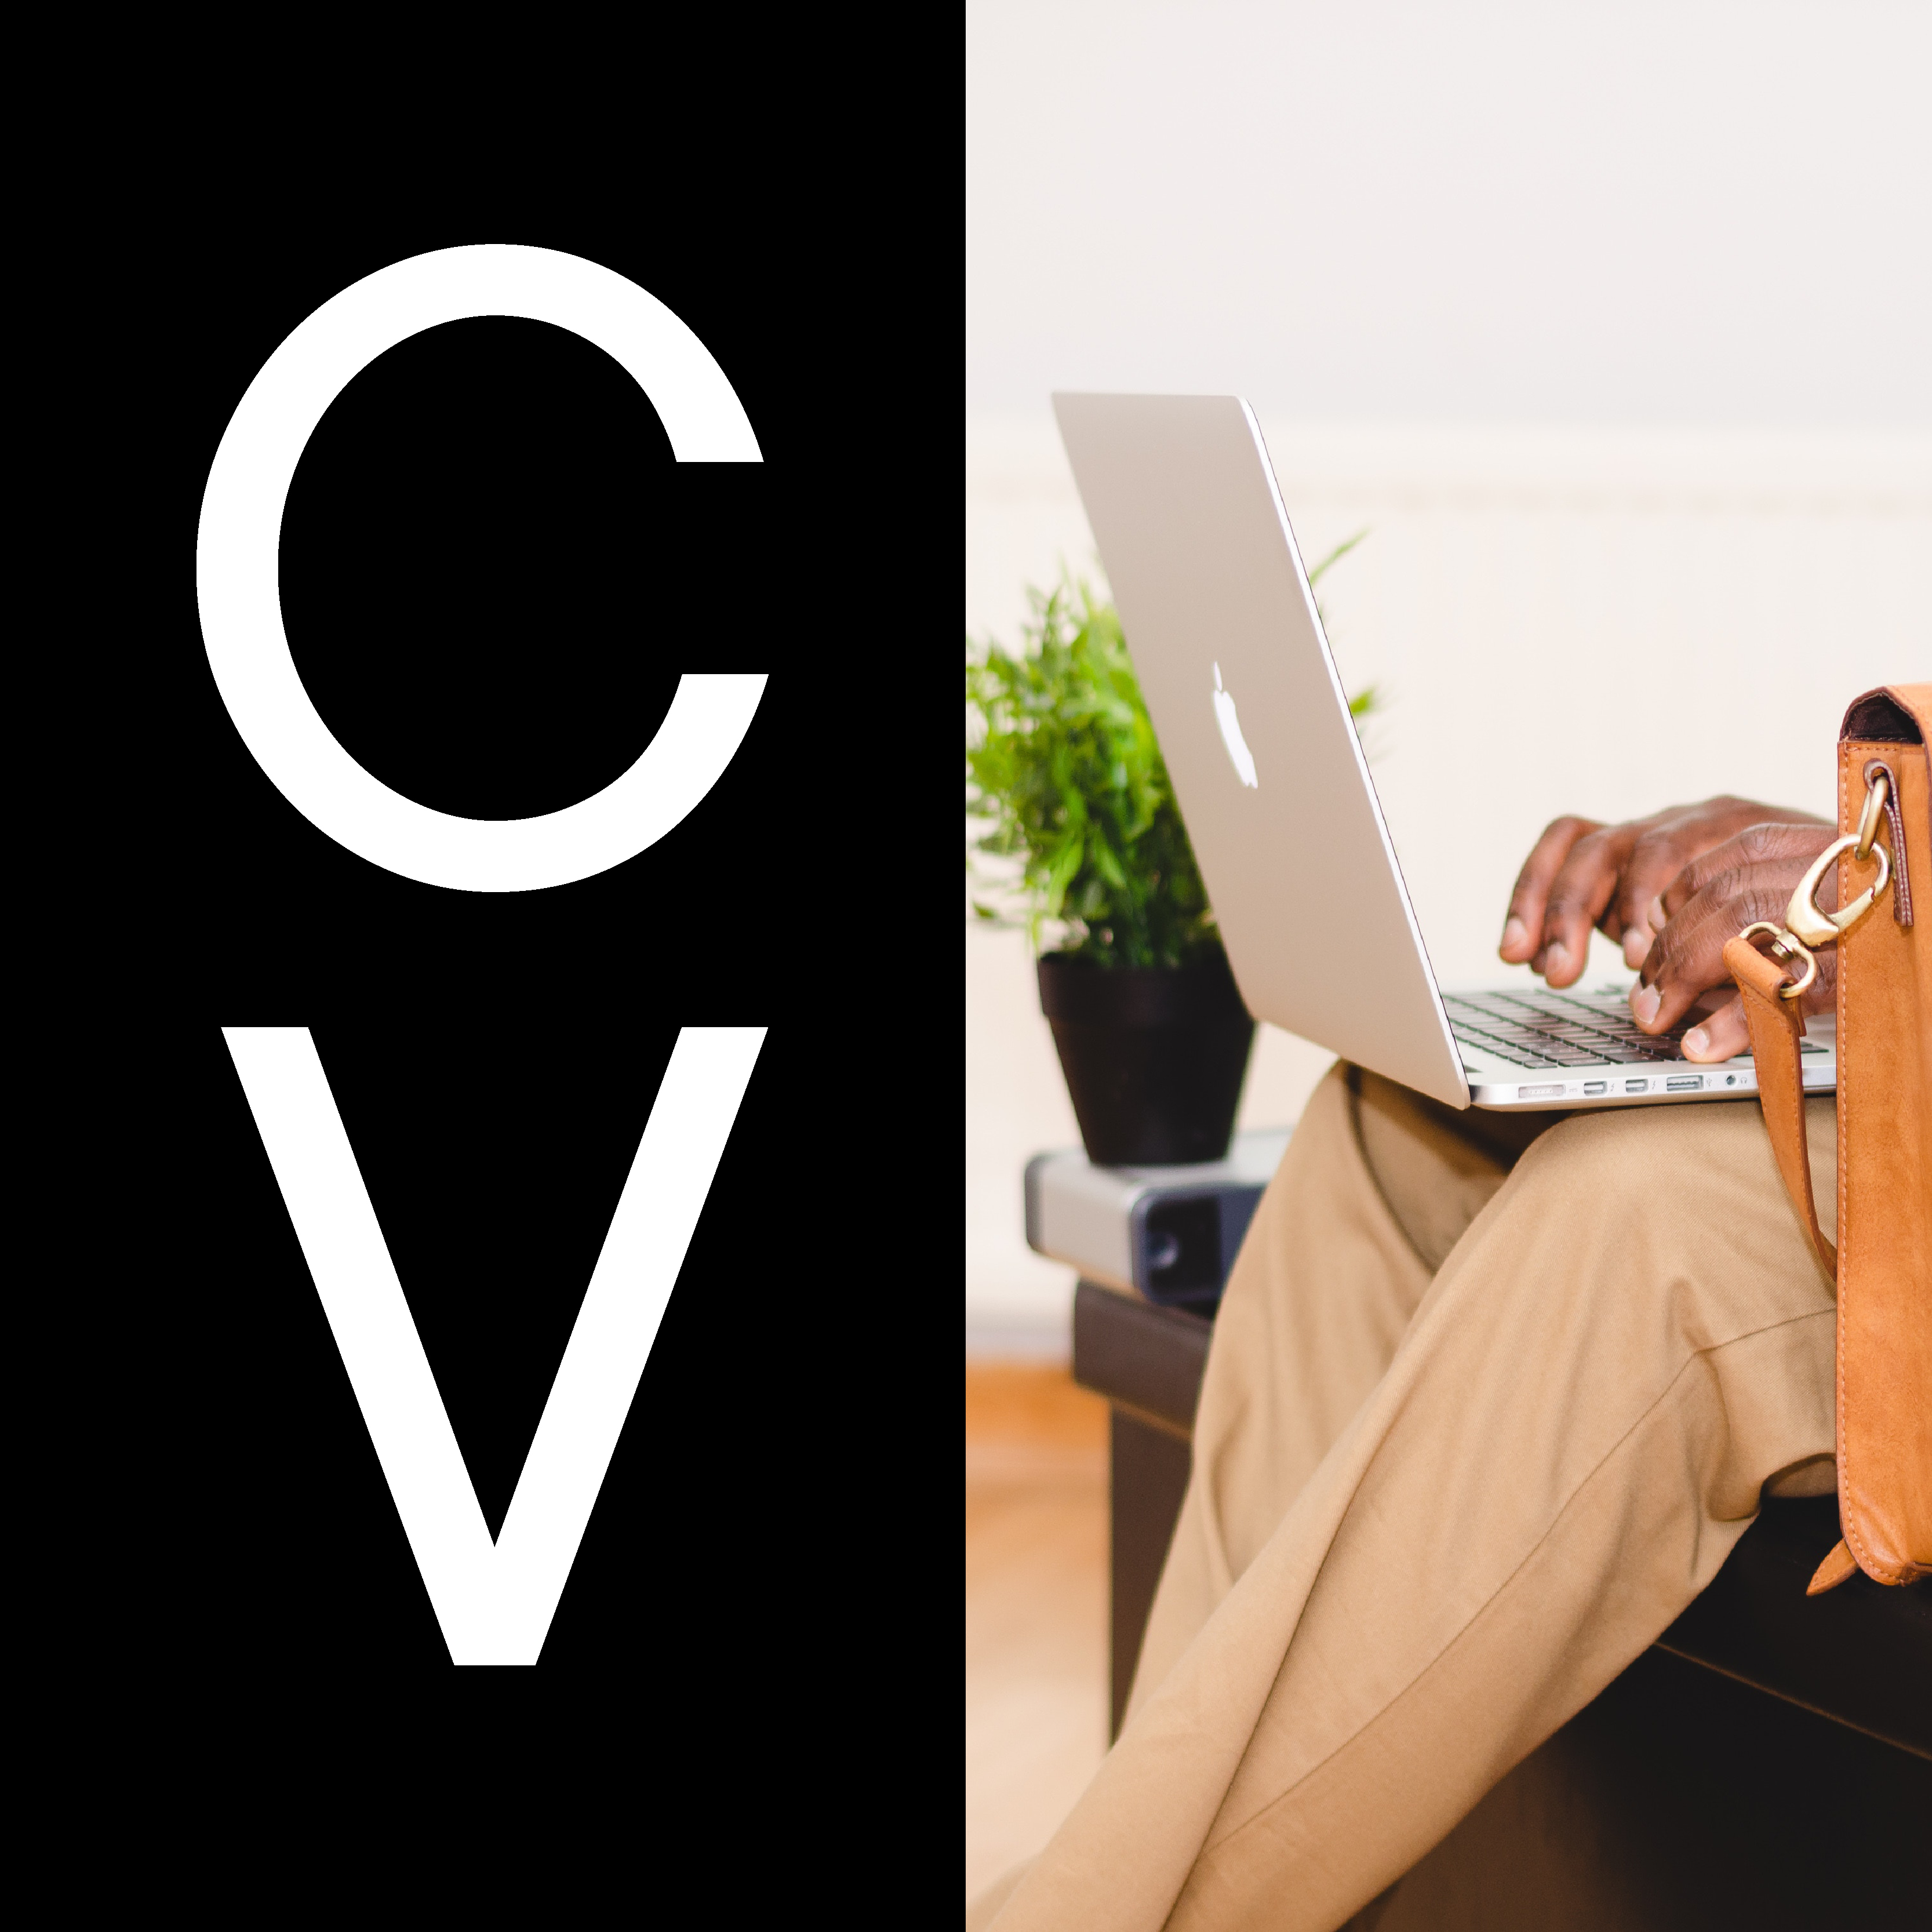 The most important things to get right on your sales CV